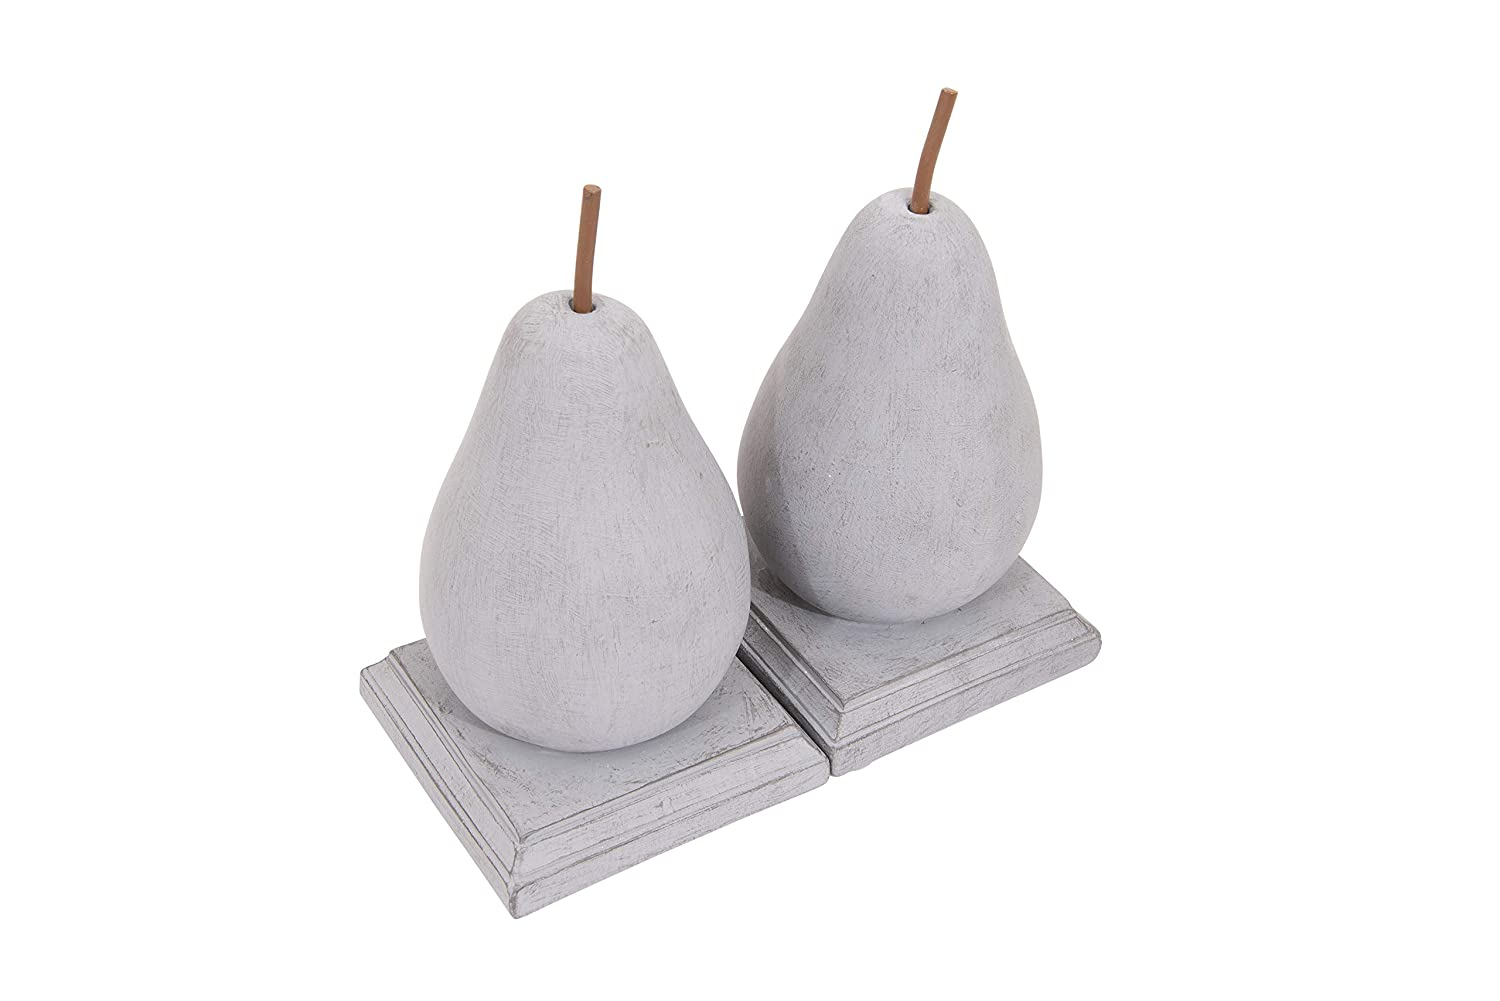 Set of 2 Pieces DF0214 Creative Co-Op Grey Resin Pear Shaped Bookends